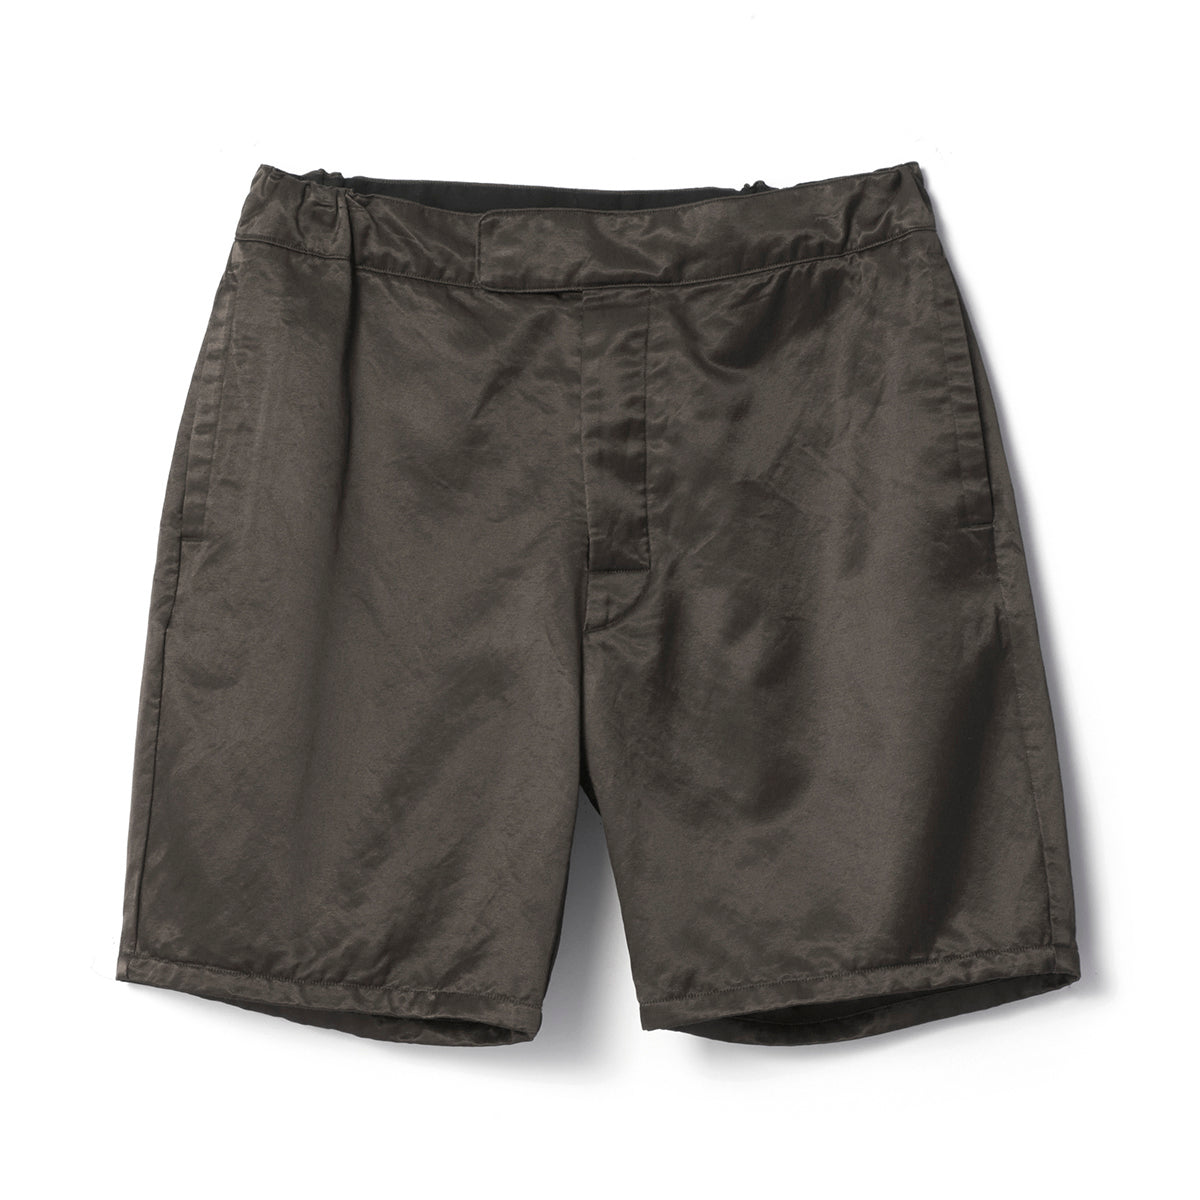 Satin Shorts / GRAY (20S-NSA-PT-10)